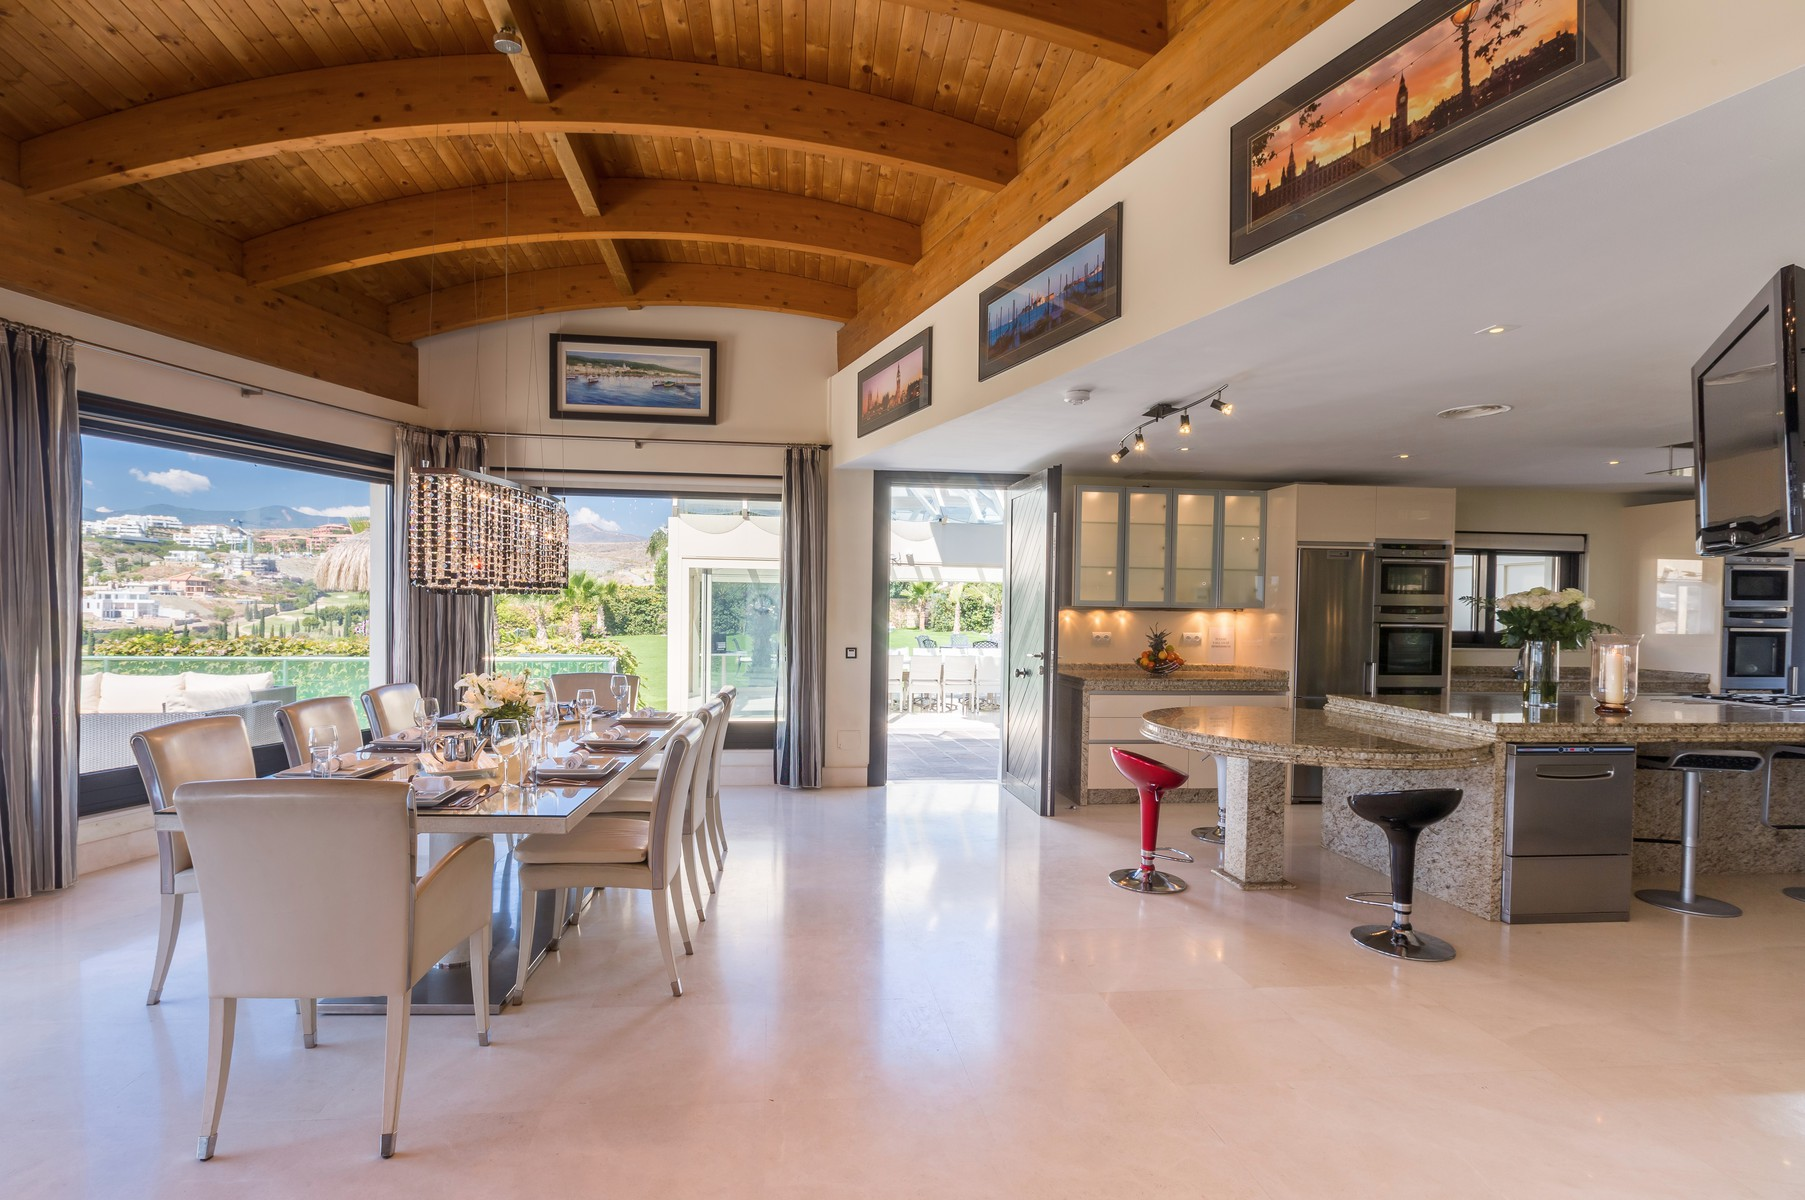 12-villa-el-cano-kitchen-dining-with-view